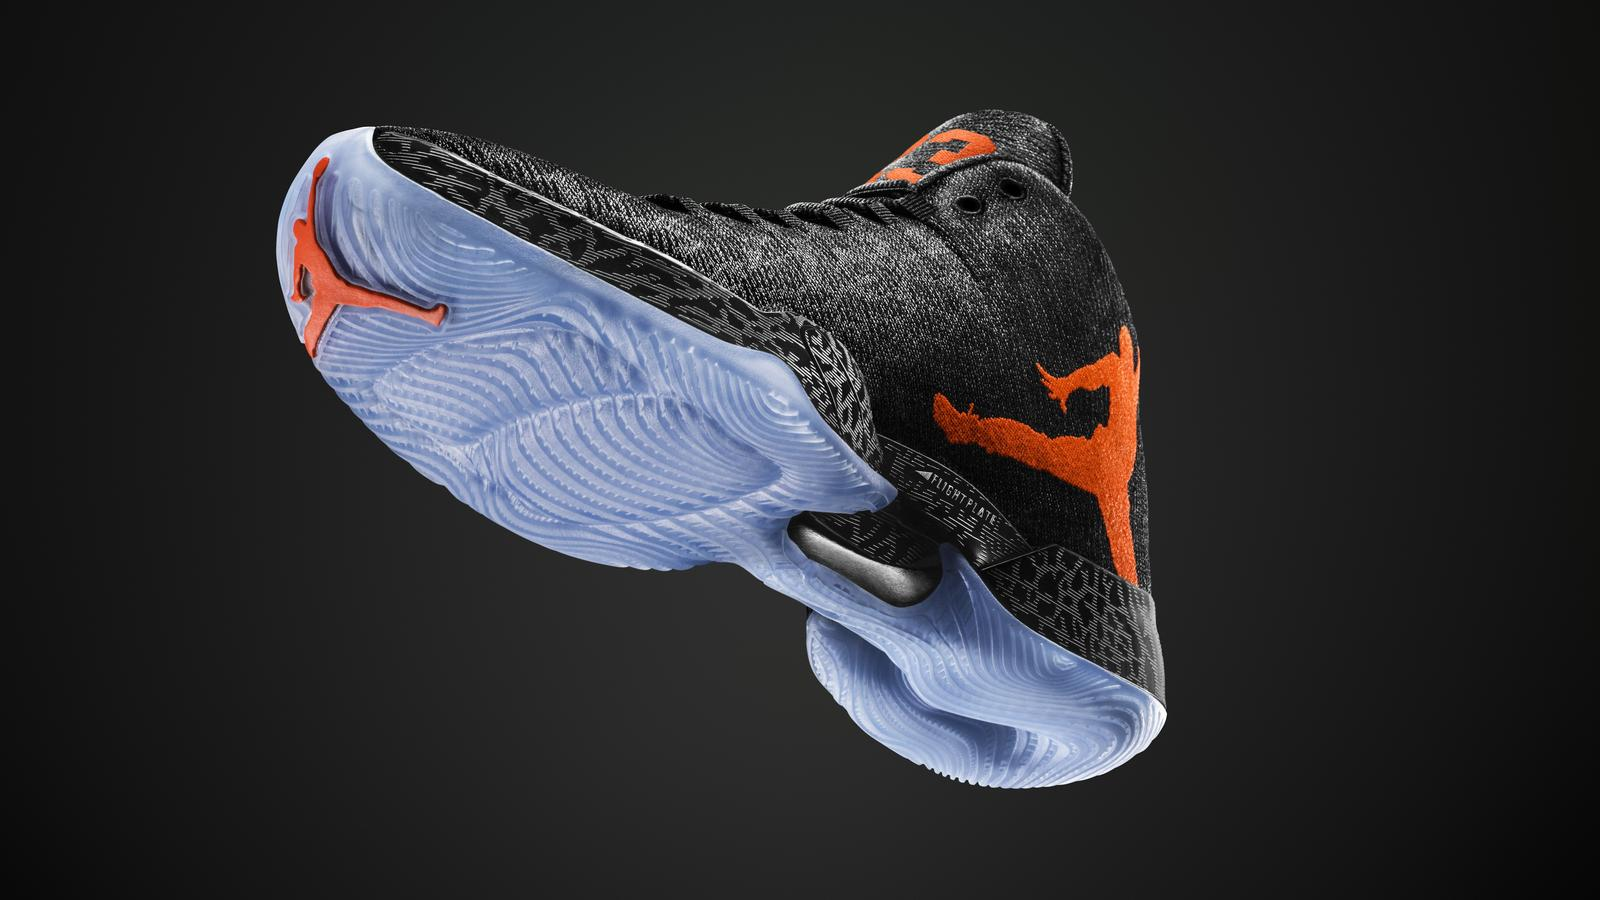 Jordan Brand Introduces First Performance-woven Upper with Air Jordan XX9 - Nike News